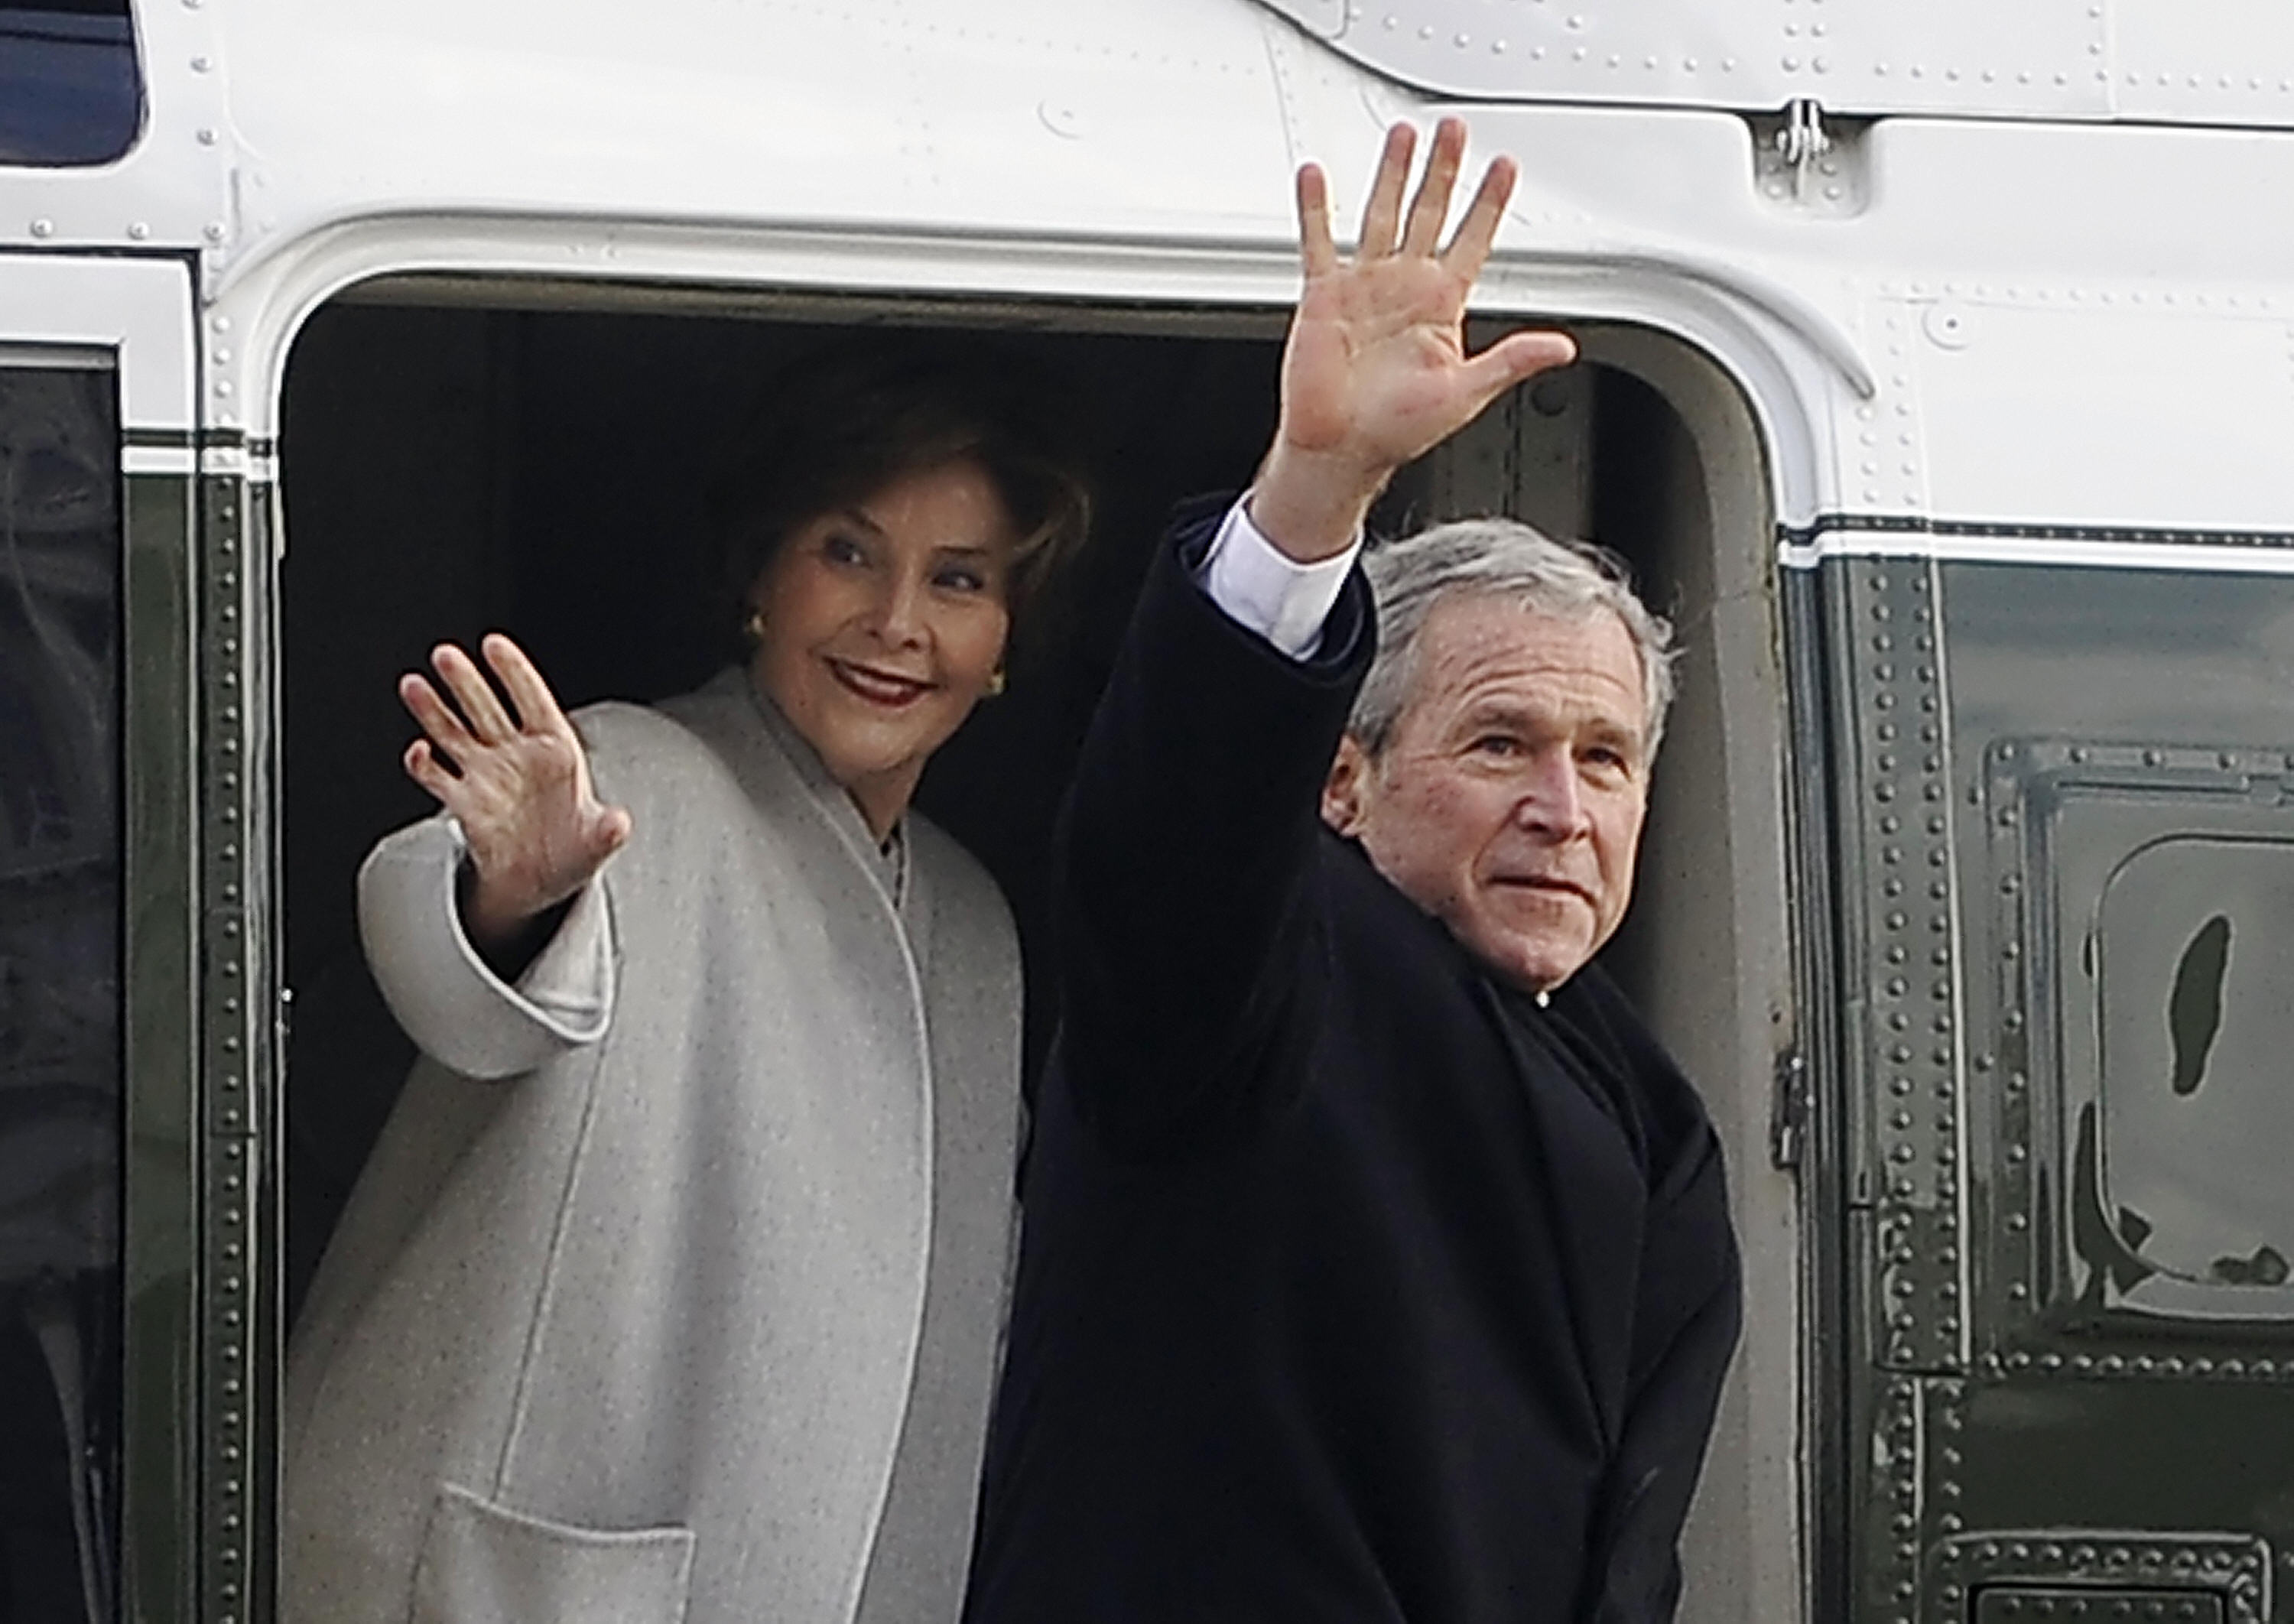 The Bushes depart the White House in 2009